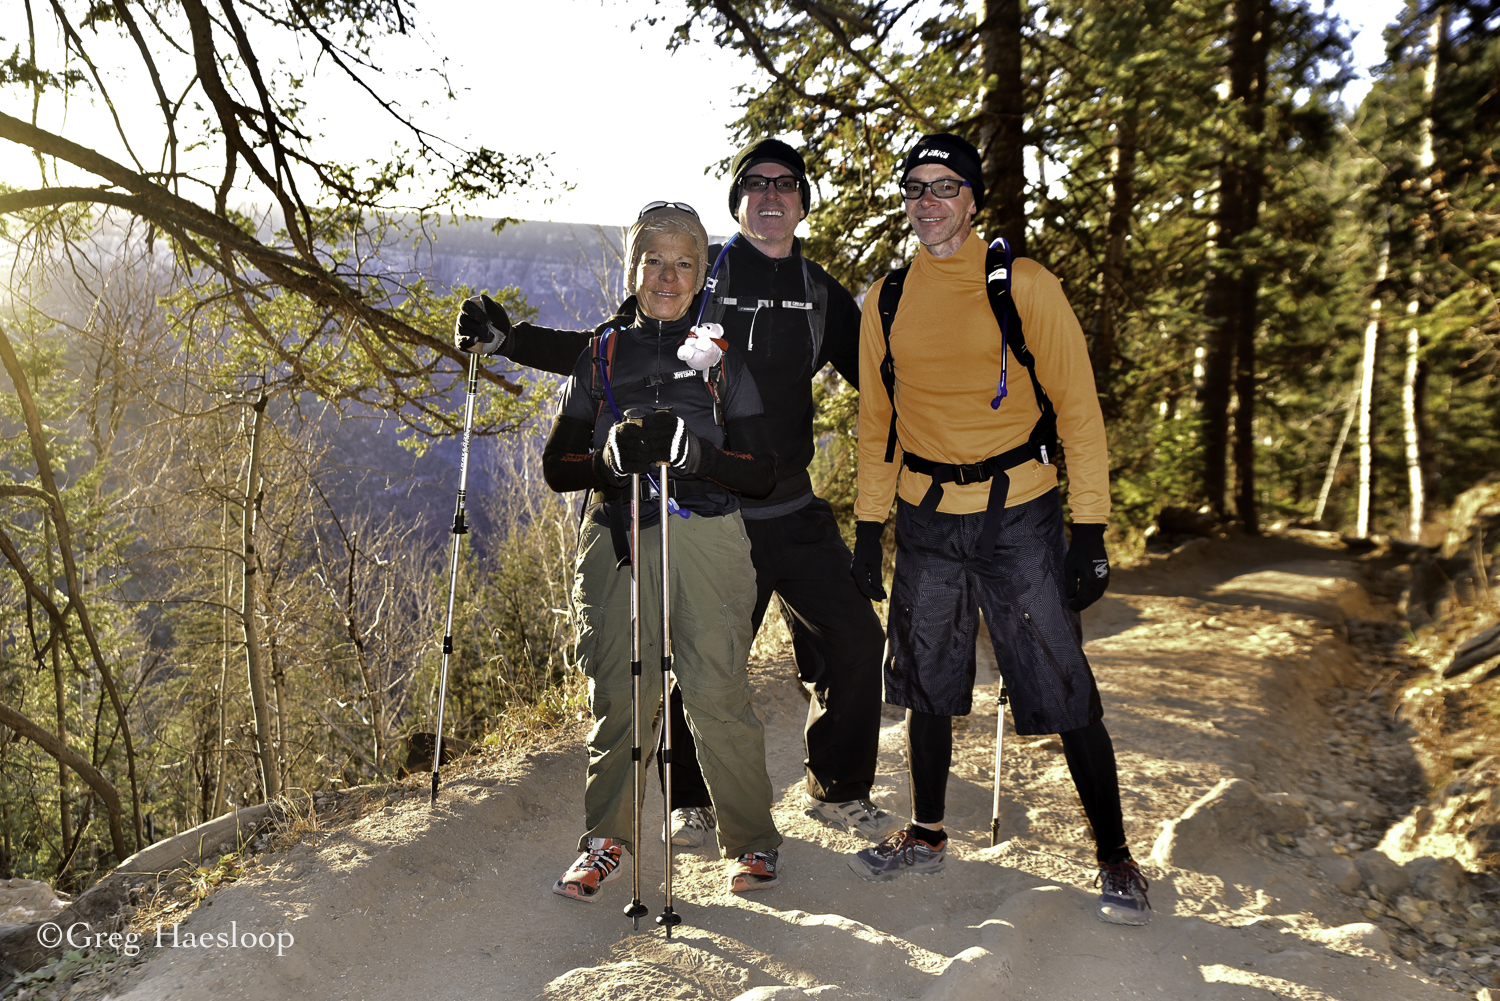 He hikers Ann (with Leftie attached), Brian and Andy.  Ann give me the clear impression that she has done a whole bunch of these hikes and is very comfortable about it.  They guy, well they just hope they can keep up with her!